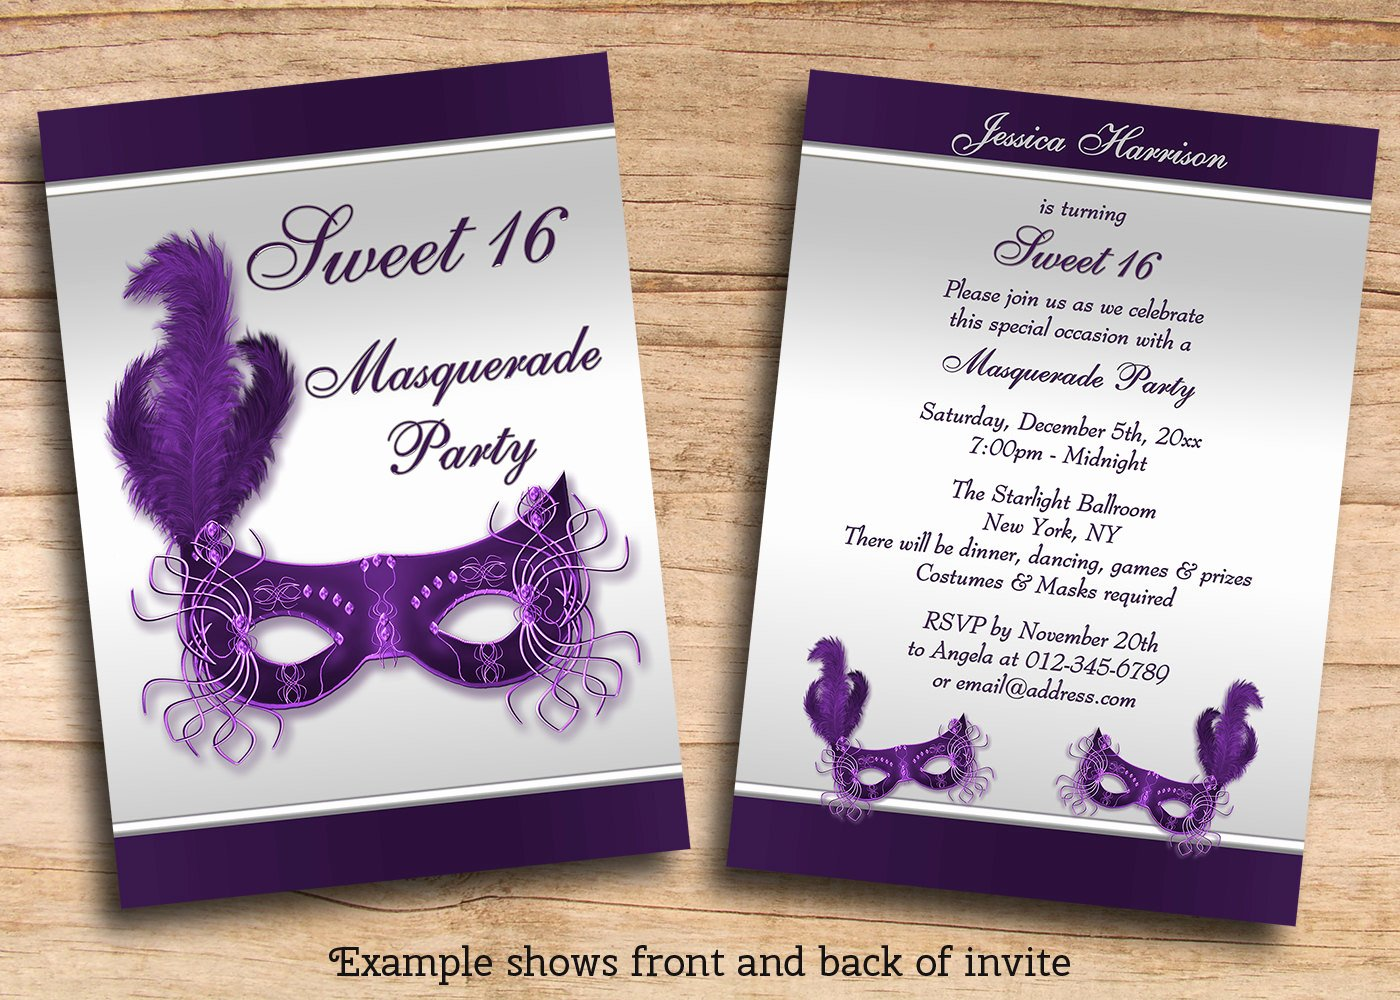 Printable Sweet 16 Masquerade Party Invites by